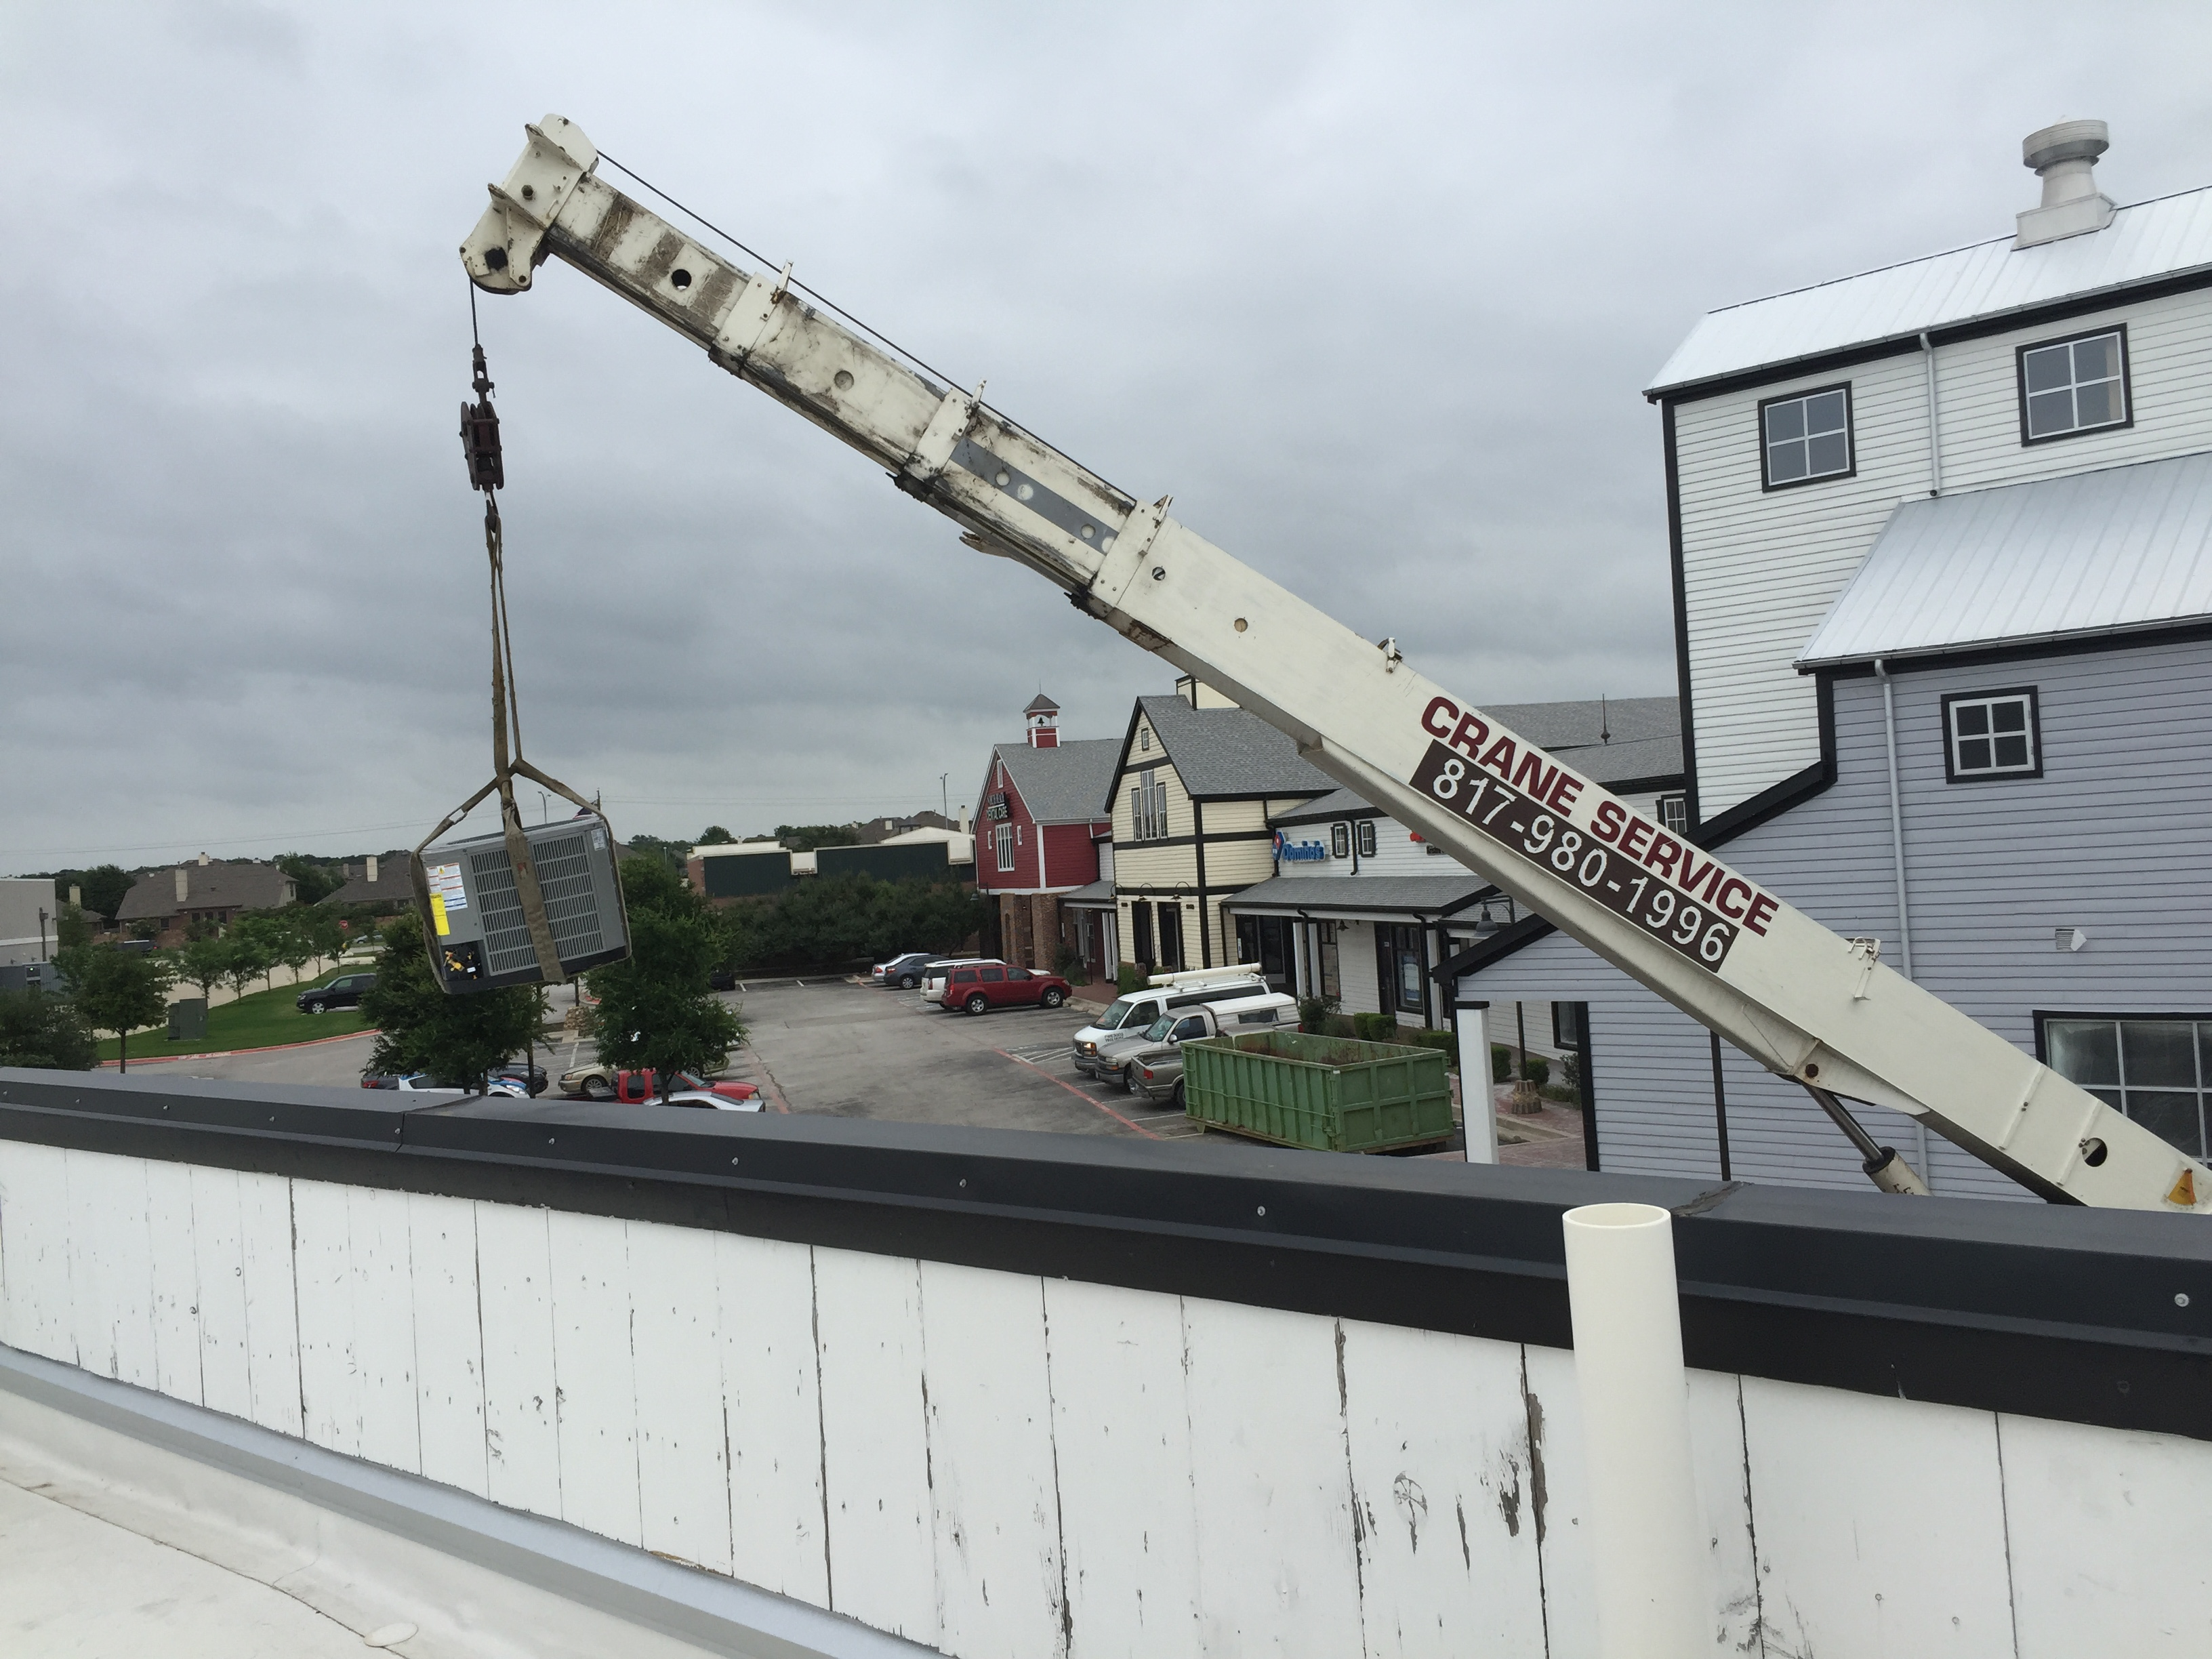 Getting a new unit on the roof